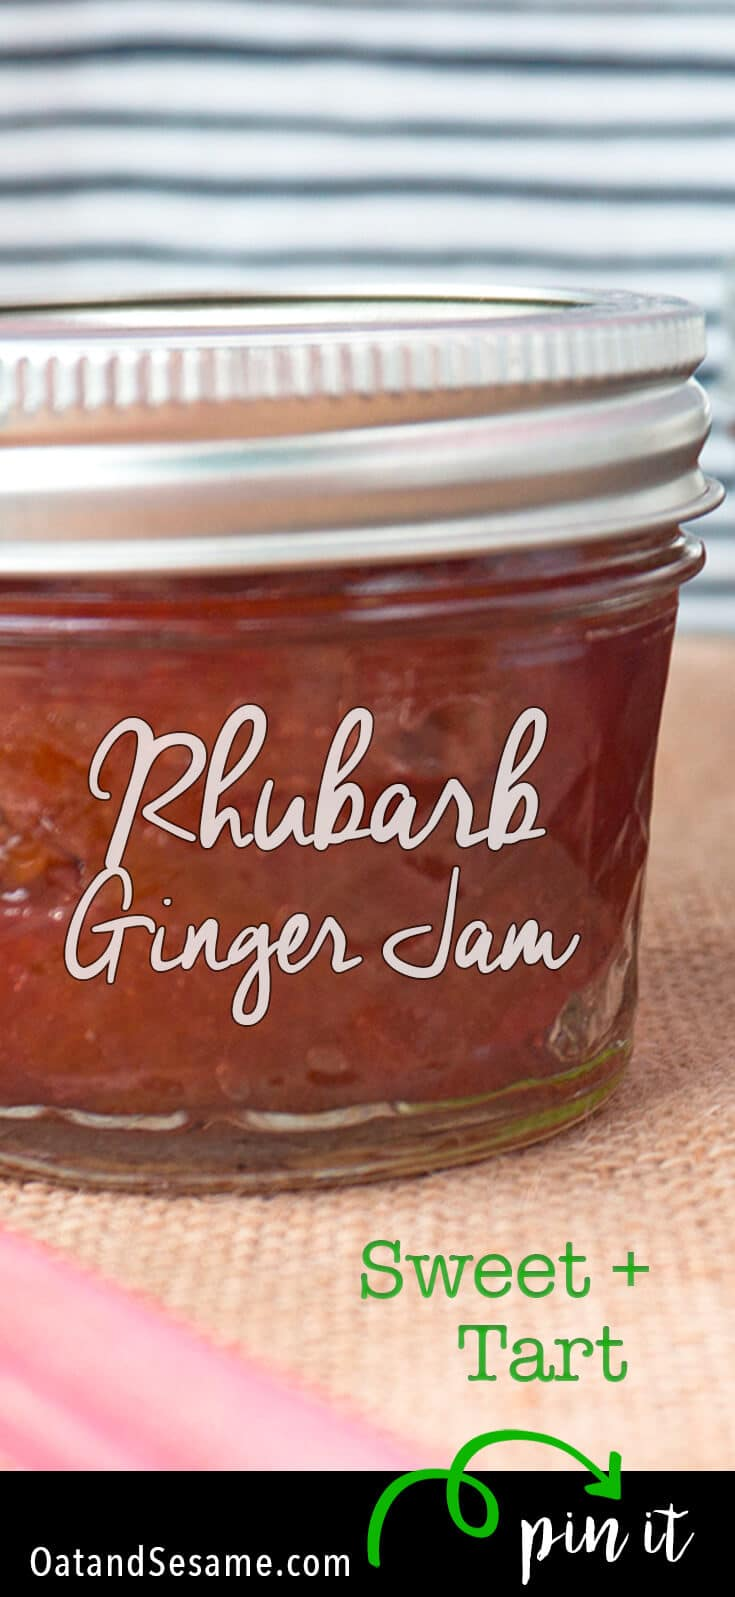 Rhubarb Season means getting creative with Rhubarb Recipes. This Rhubarb Ginger Jam is a great way to use a lot of rhubarb and preserve it for the year! | JAM | RHUBARB | TUTORIAL | Recipe at OatandSesame.com